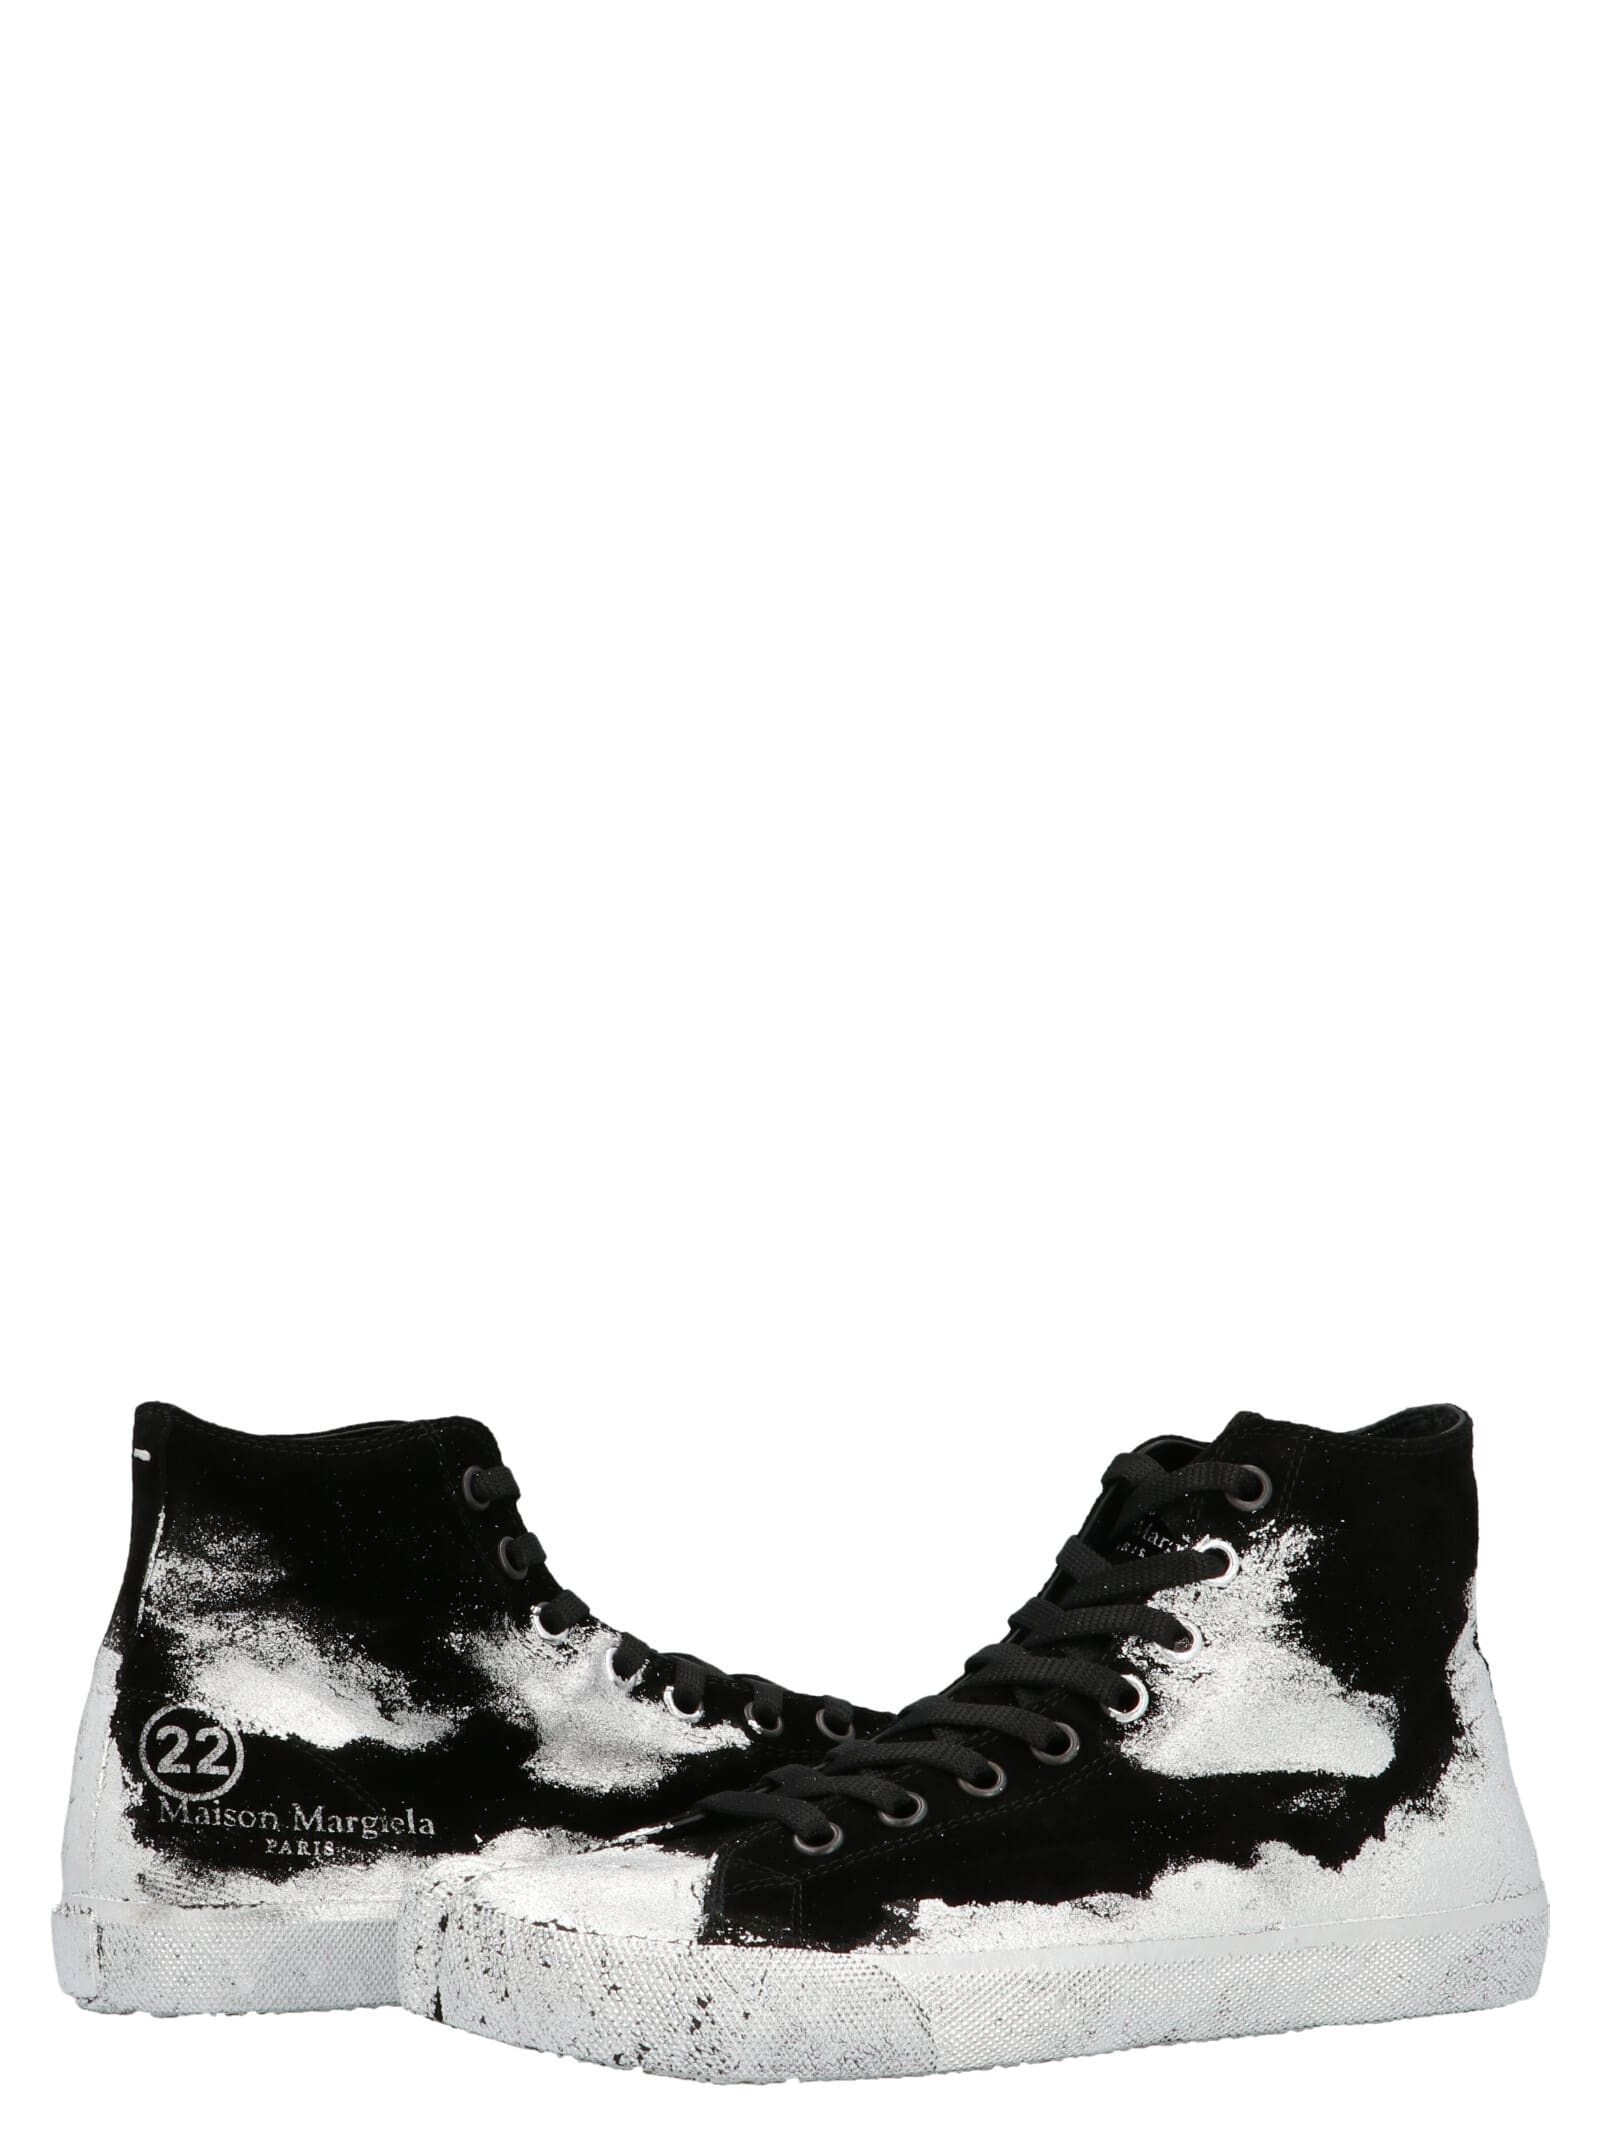 Cheap And Nice Maison Margiela 'tabi Canvas' Shoes - Great Deals